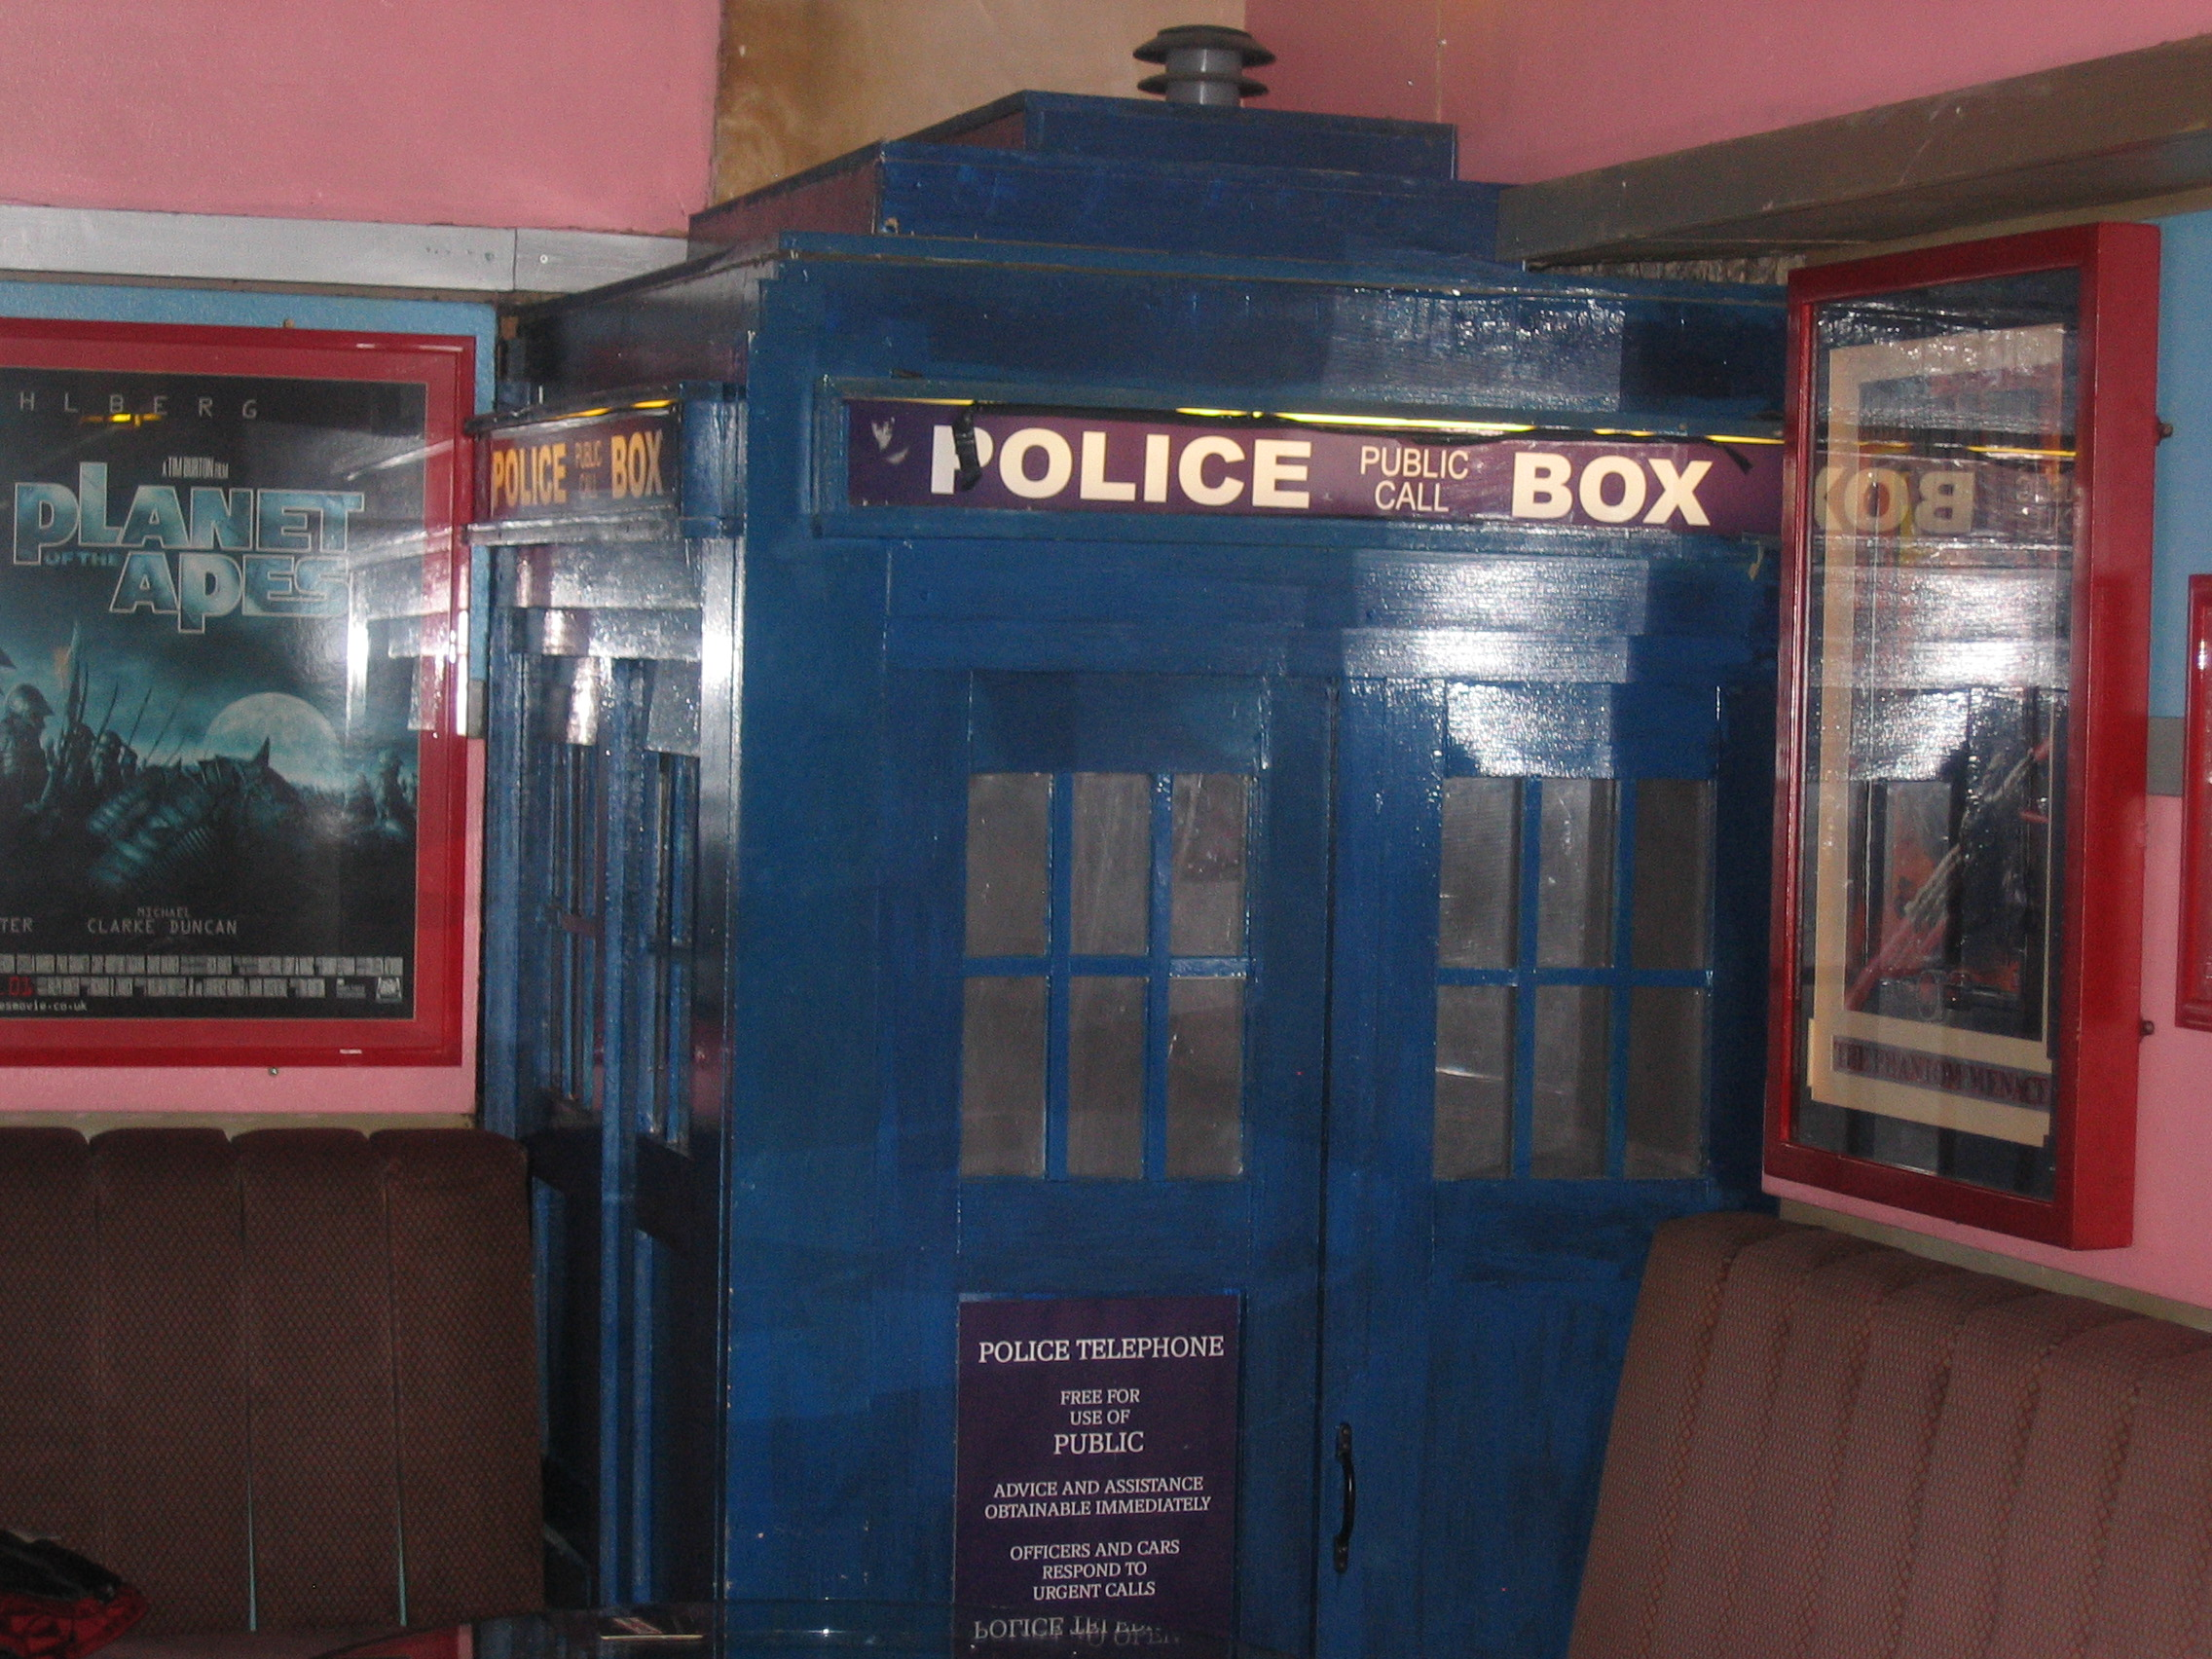 Photo taken by me – Dr Who TARDIS in FAB Café, Manchester